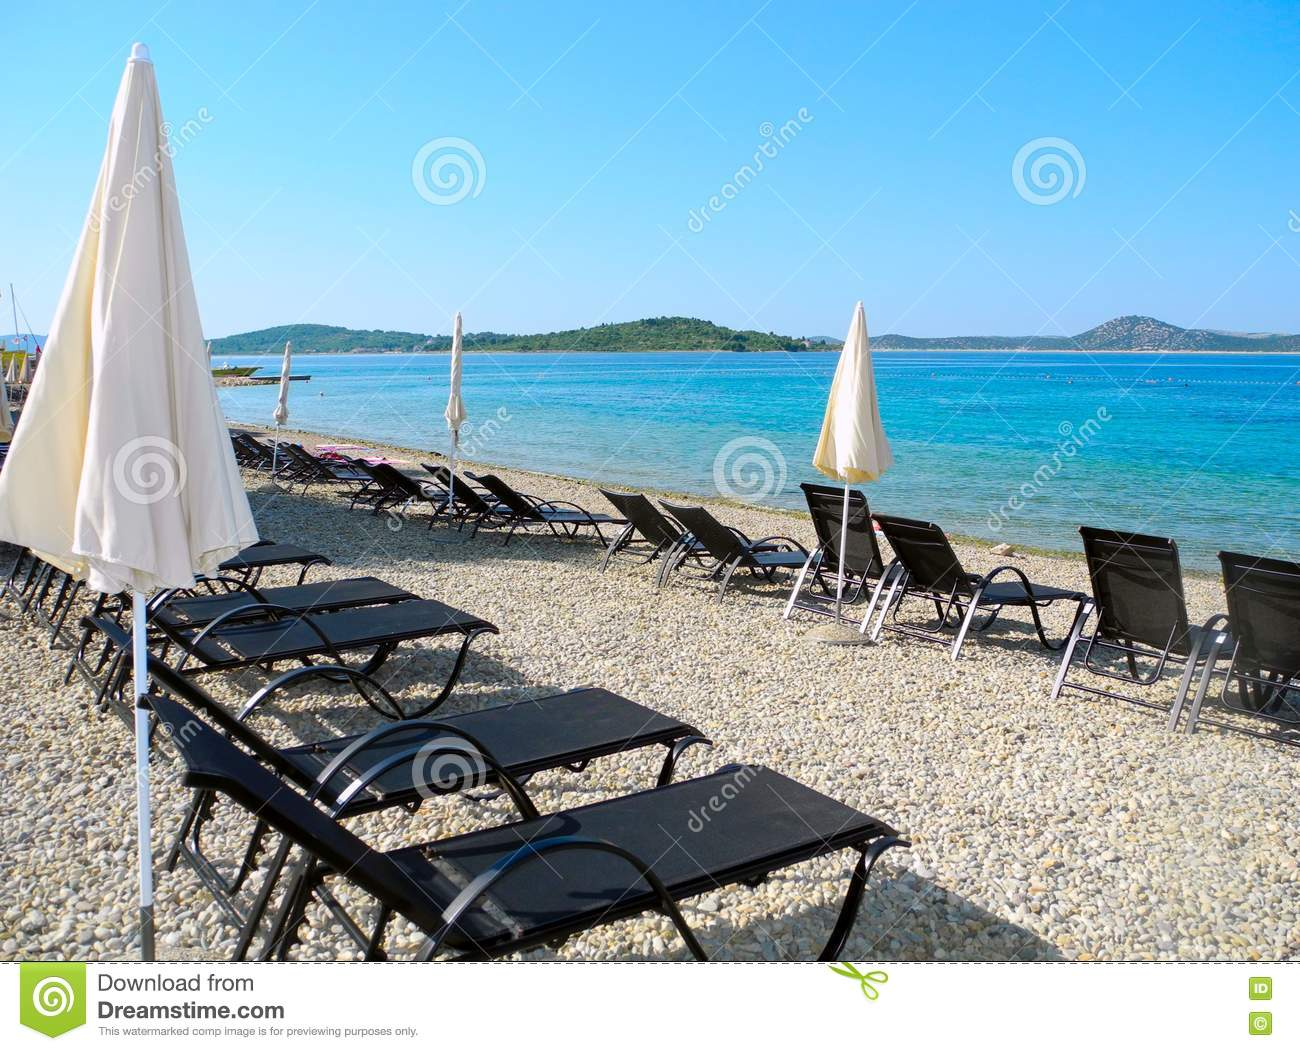 Sun Loungers On The Beach In Vodice. Stock Photo.